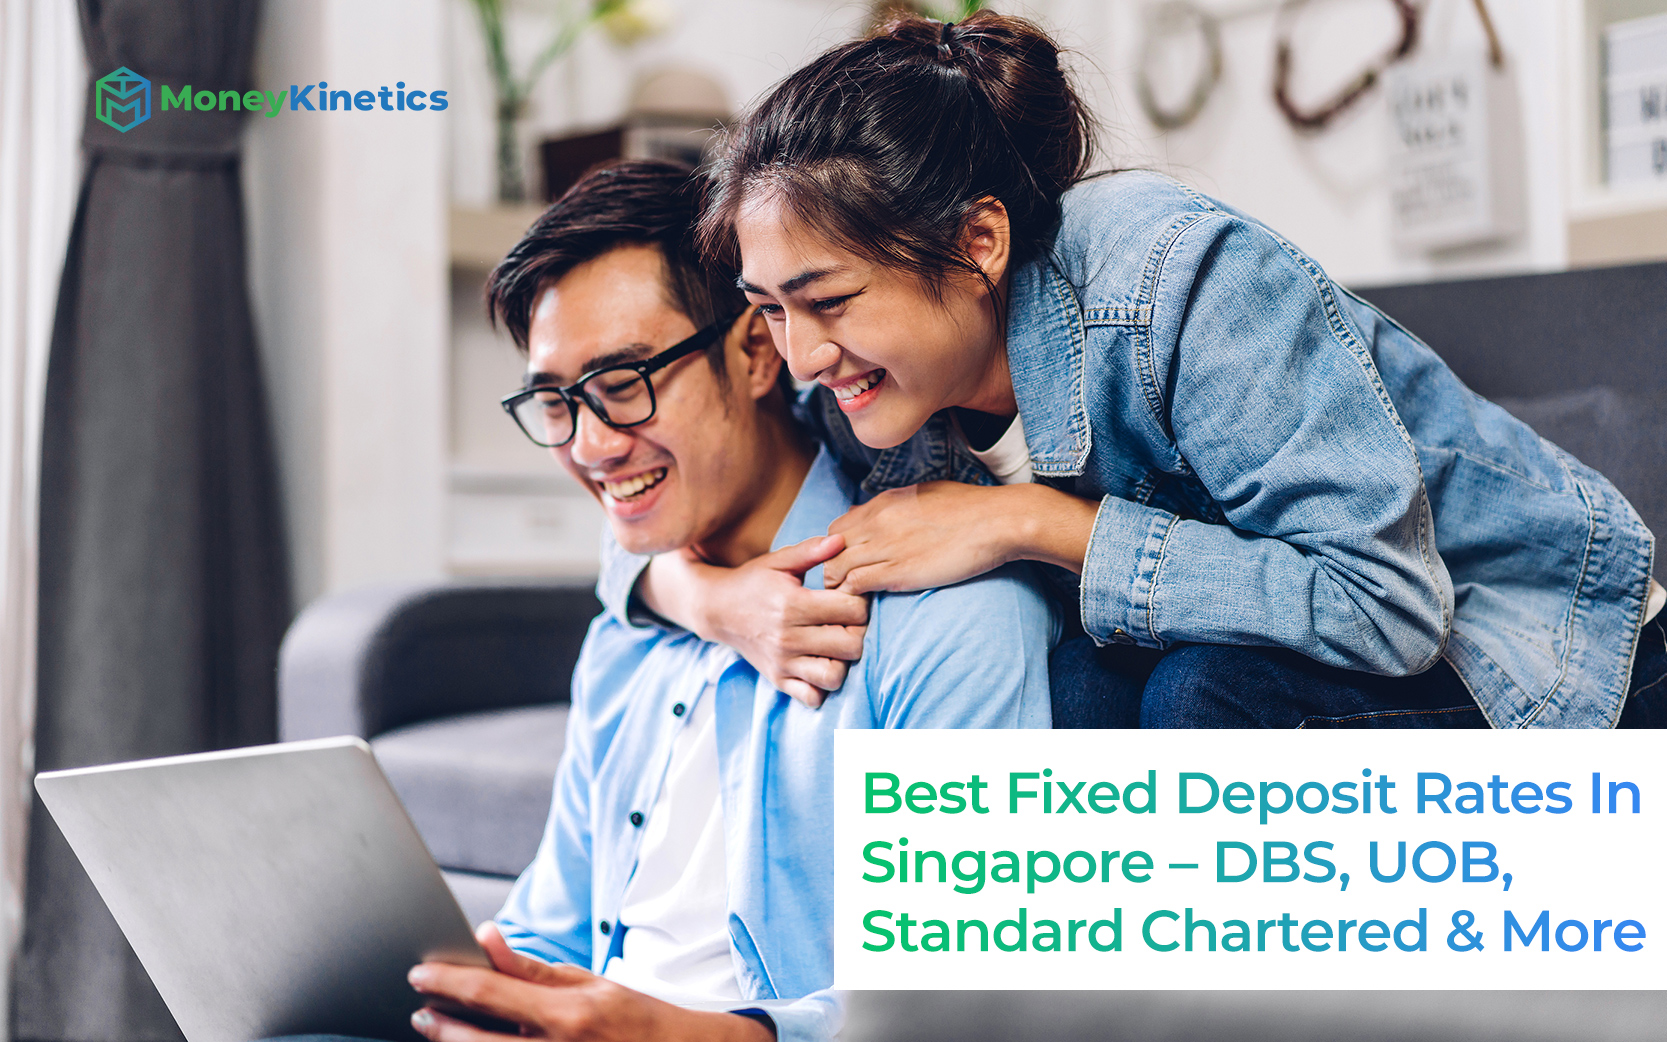 Best-Fixed-Deposit-Rates-In-Singapore DBS,-UOB,-Standard-Chartered-And-More-Money-Kinetics